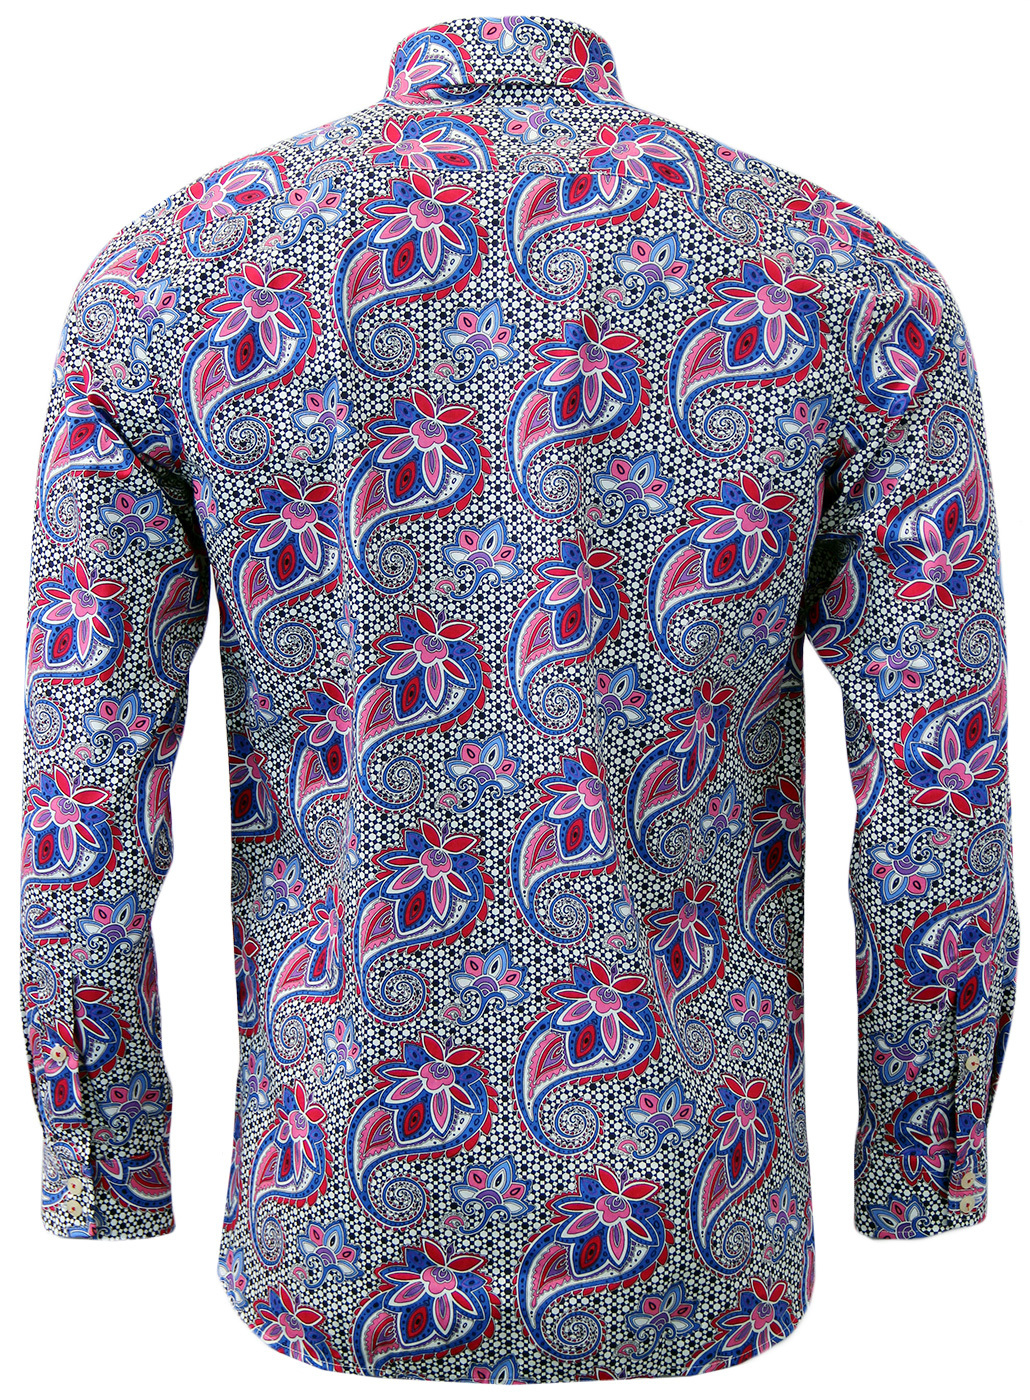 d906bd2b20c ROCOLA Retro Sixties Abstract Paisley Op Art Shirt in Blue Red